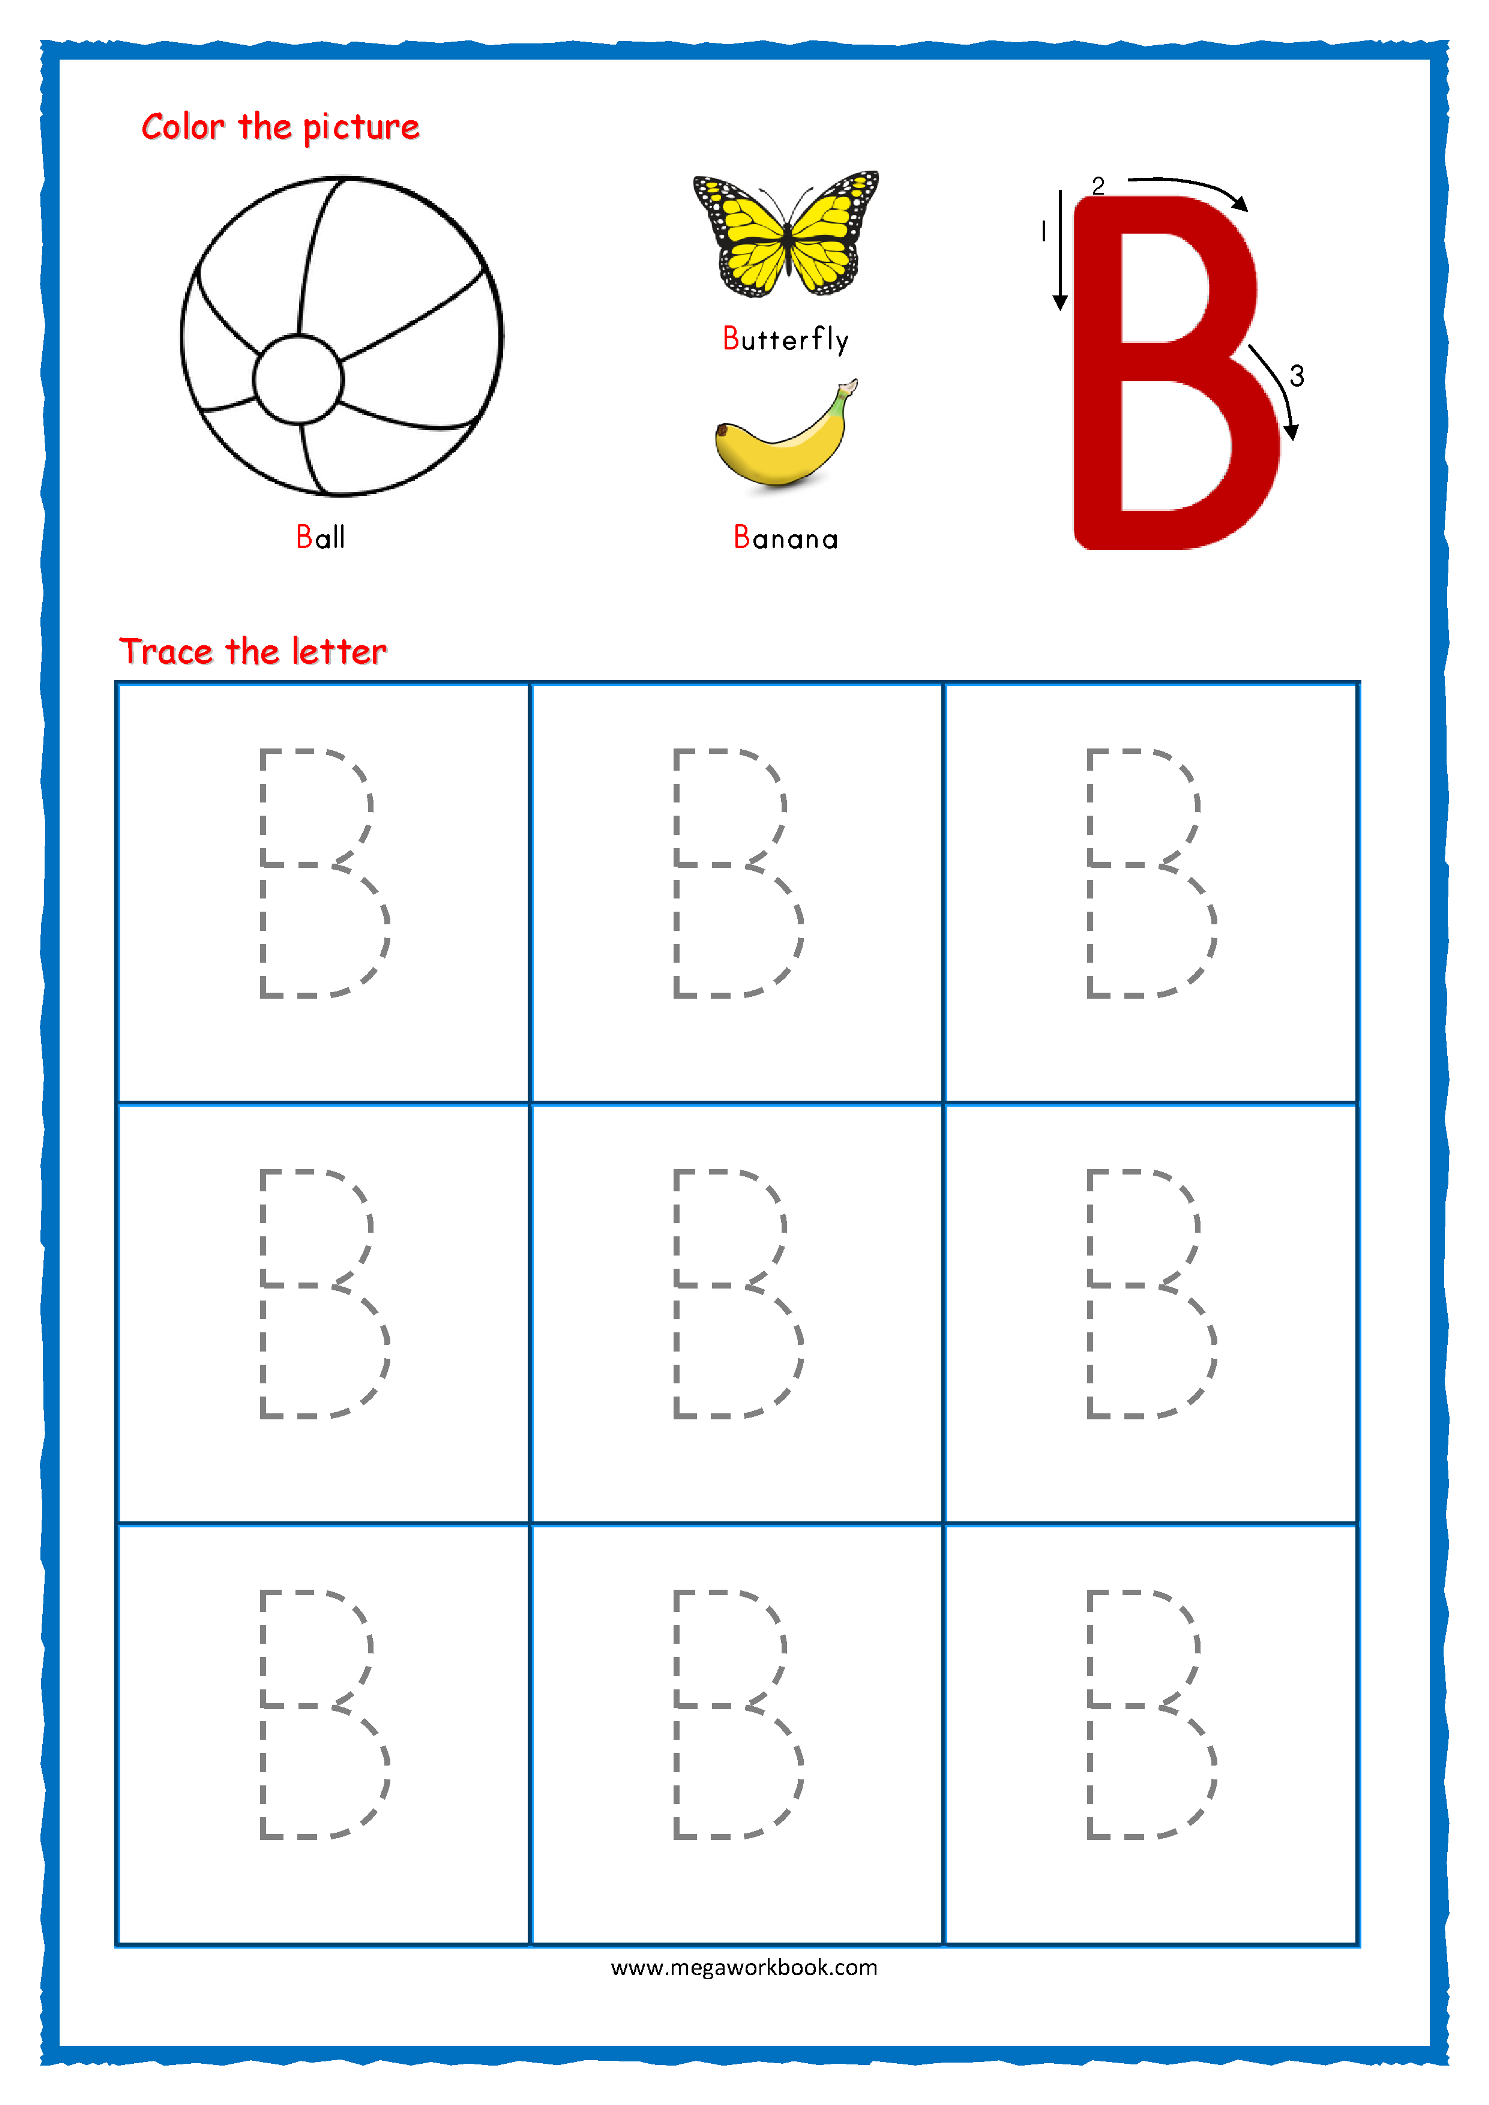 Capital_Letter_Tracing_With_Crayons_02_Alphabet_B Coloring in B Letter Tracing Worksheet